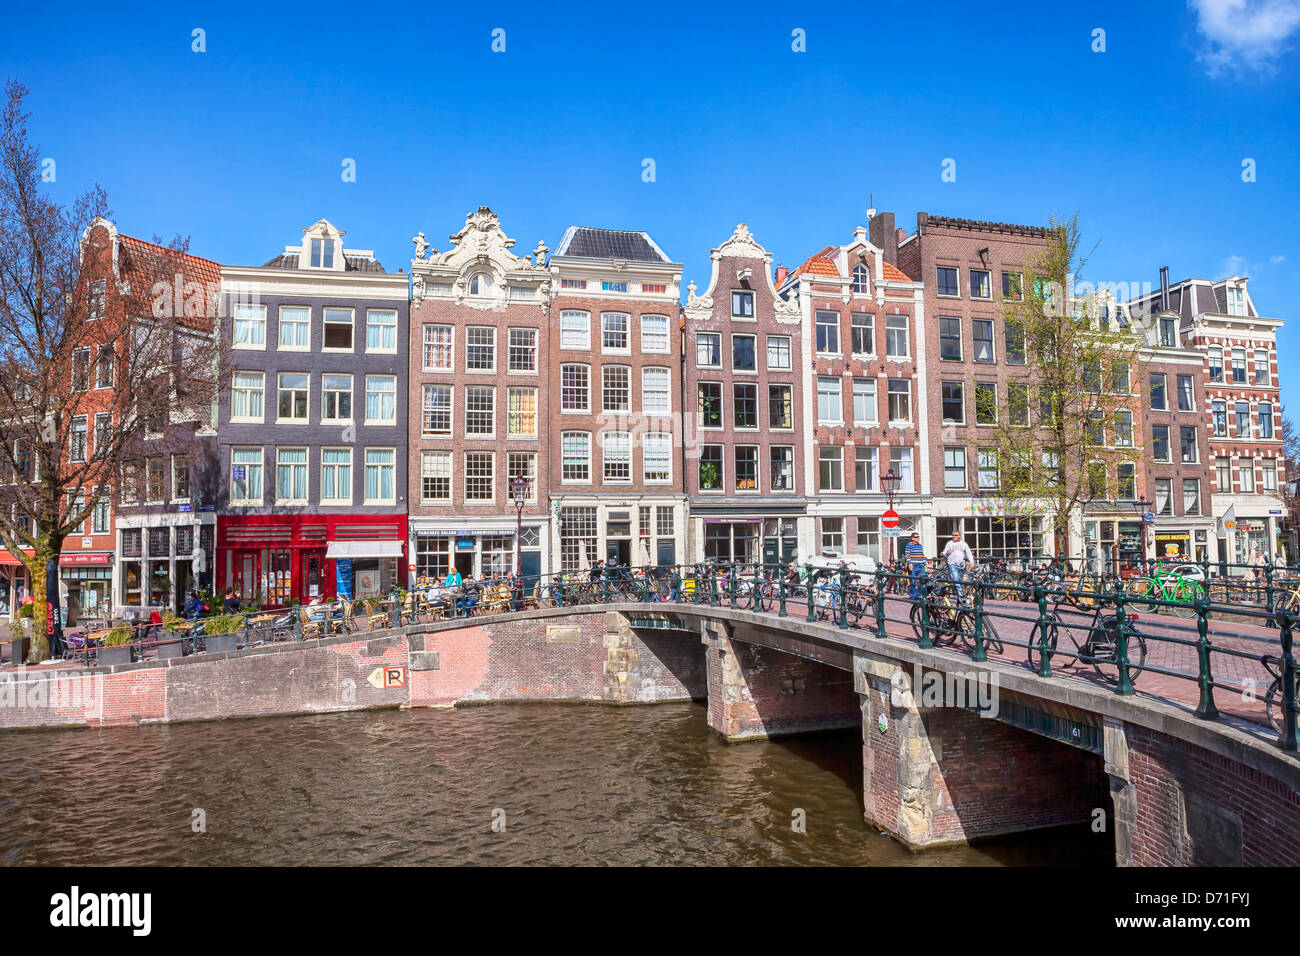 Prinsengracht, Amsterdam, Hollande du Nord, Pays-Bas Photo Stock